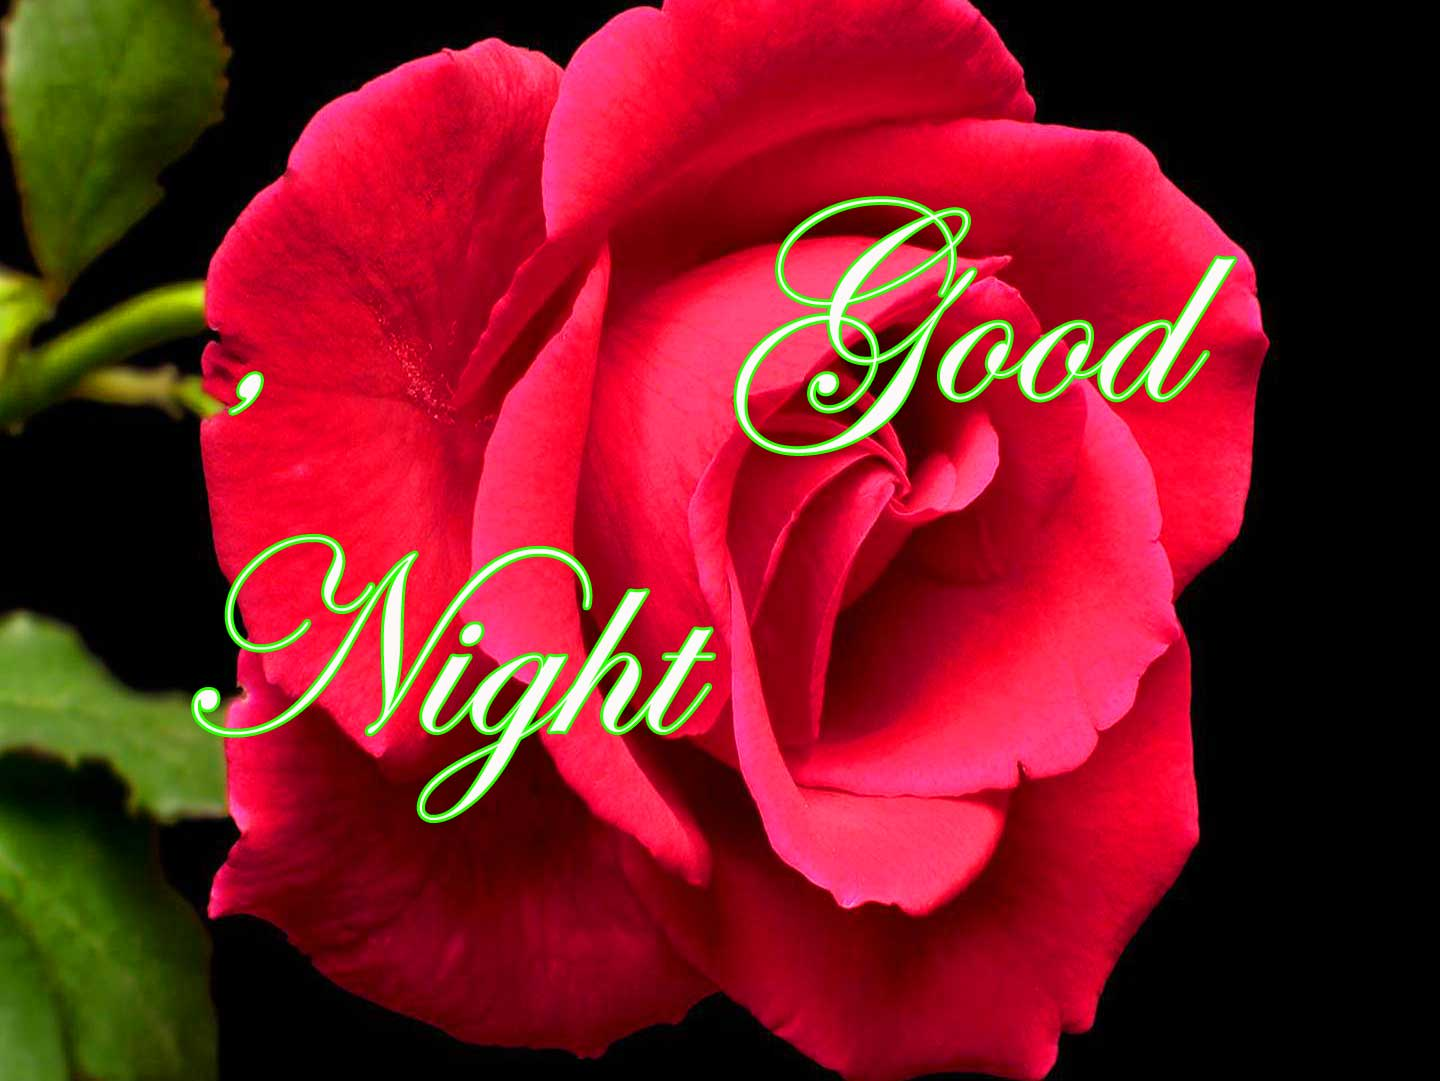 For Mobile Good Night Wallpaper pics With Flower